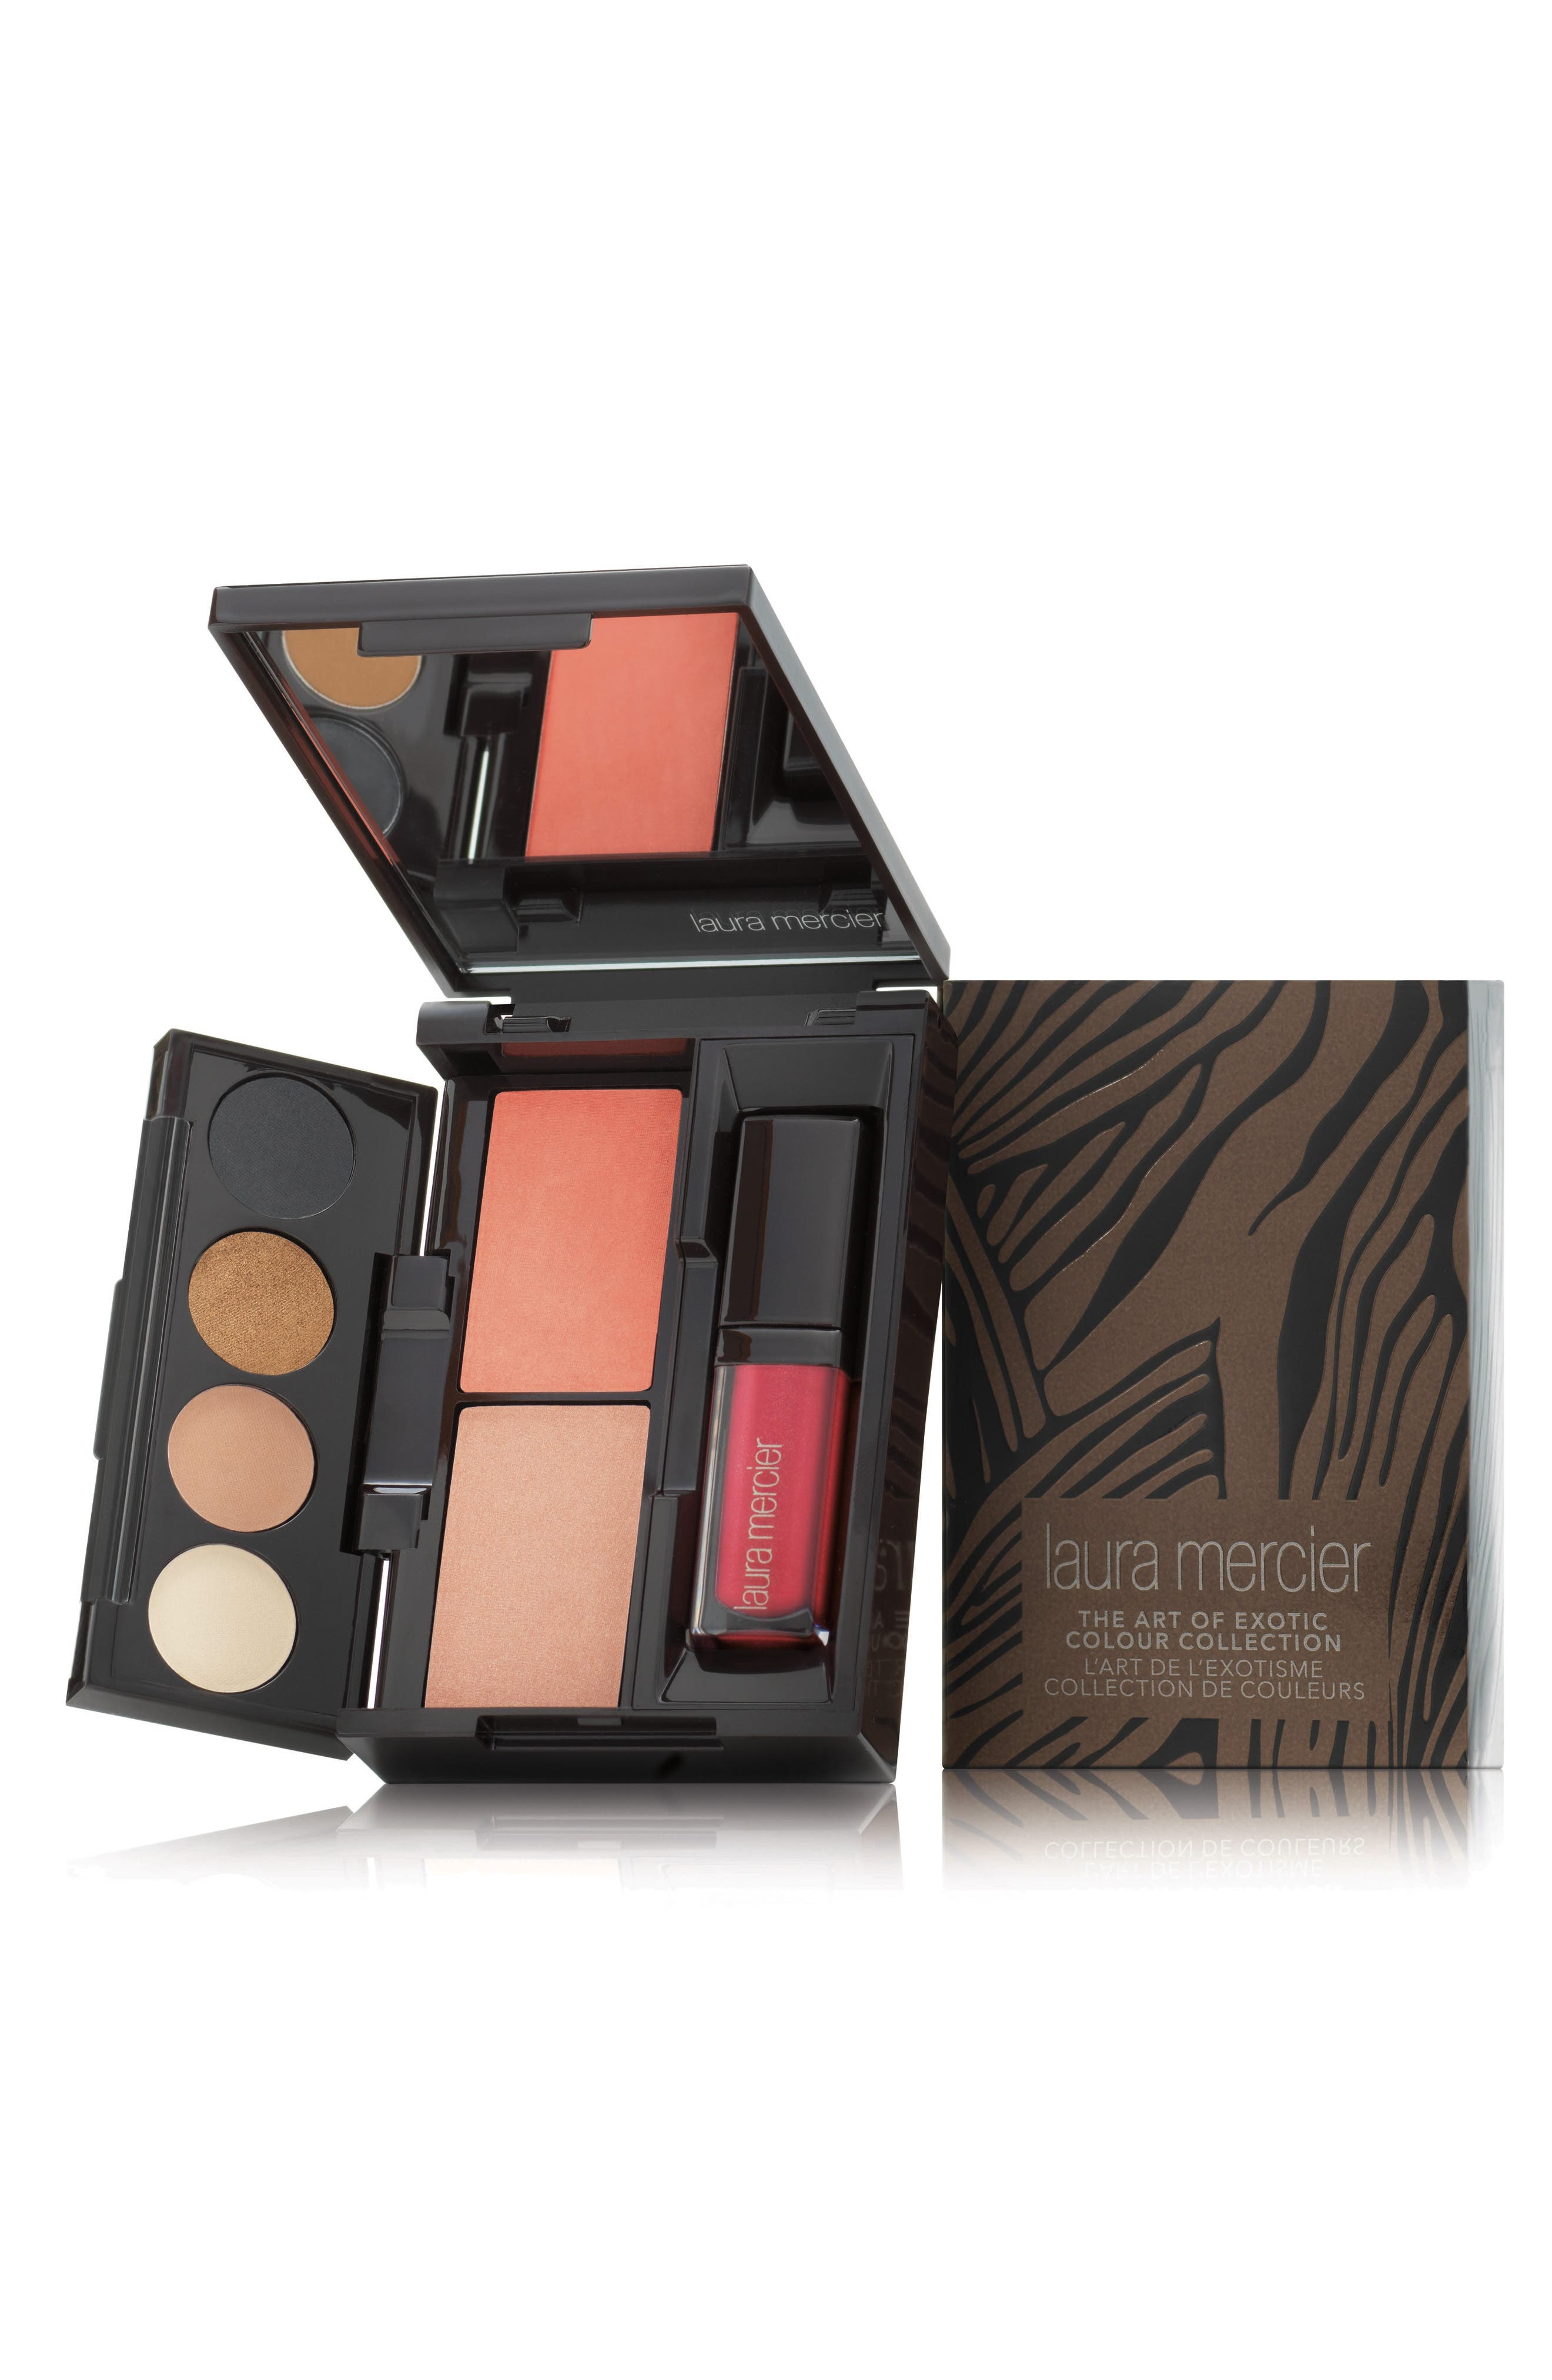 Main Image - Laura Mercier The Art of Exotic Colour Collection ($104 Value)